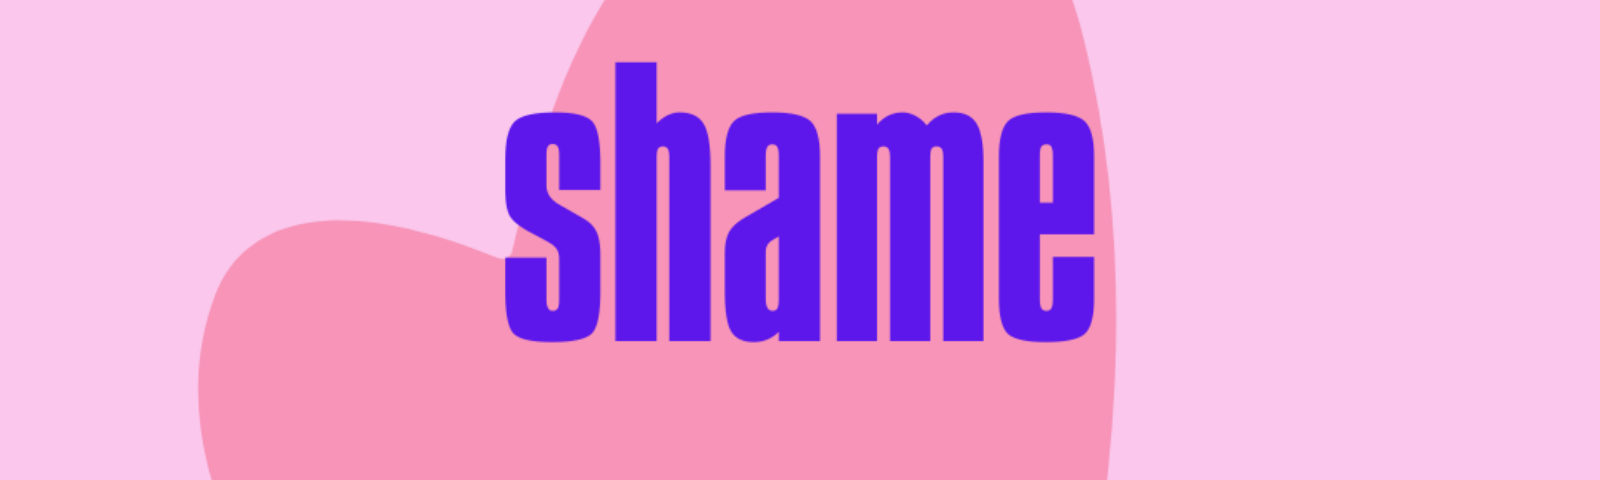 A pink background with two hearts and the word Shame.